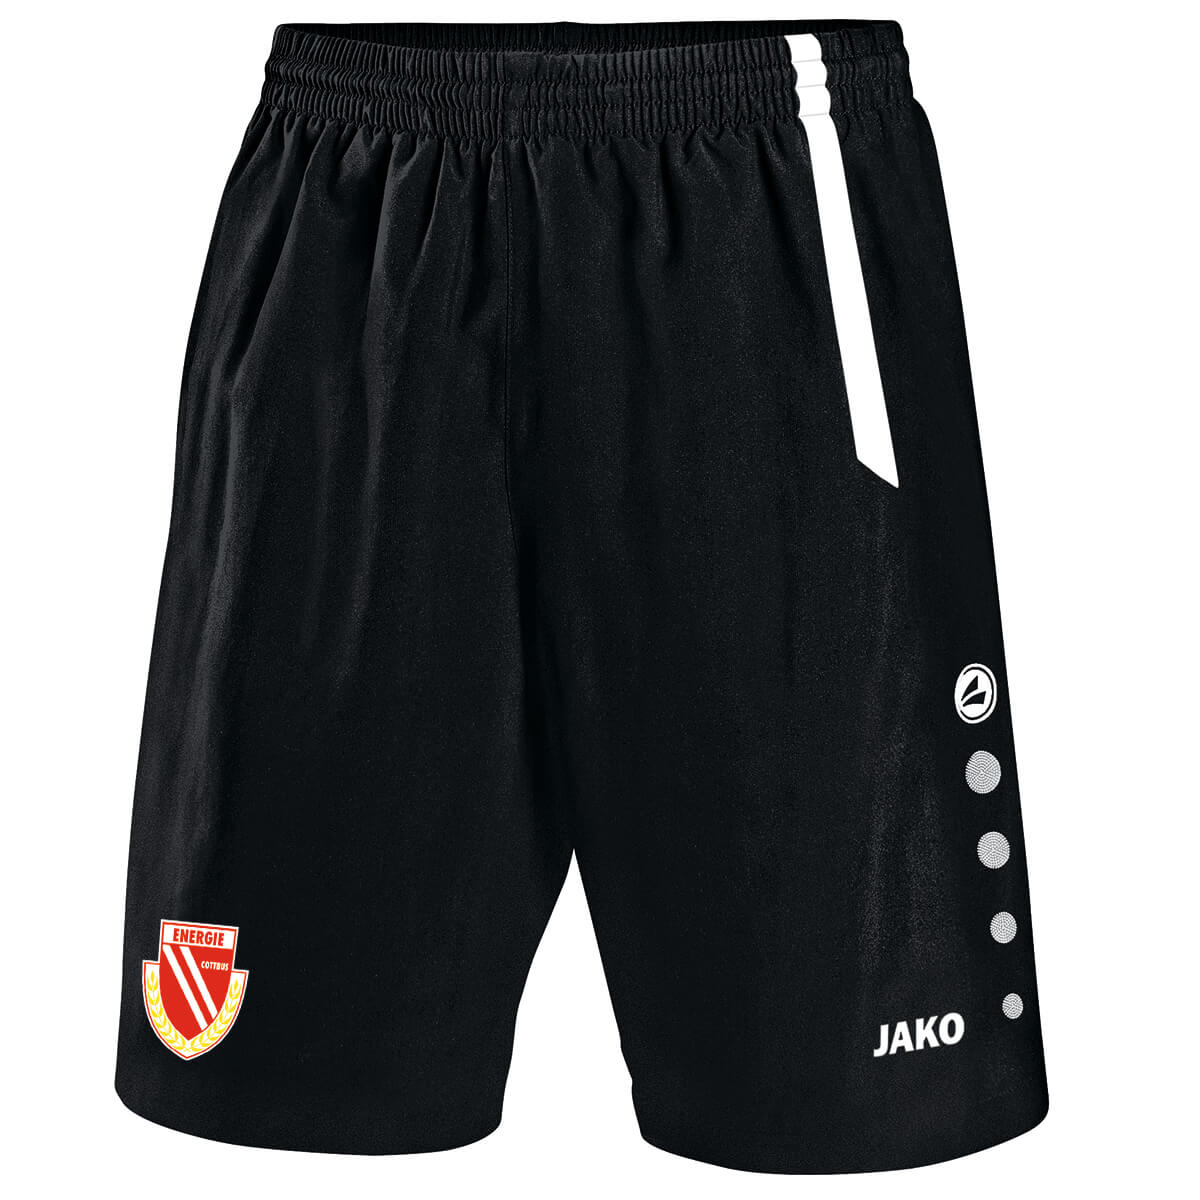 FC Energie Cottbus Short Ausweich - Kinder | Jako CO4419I